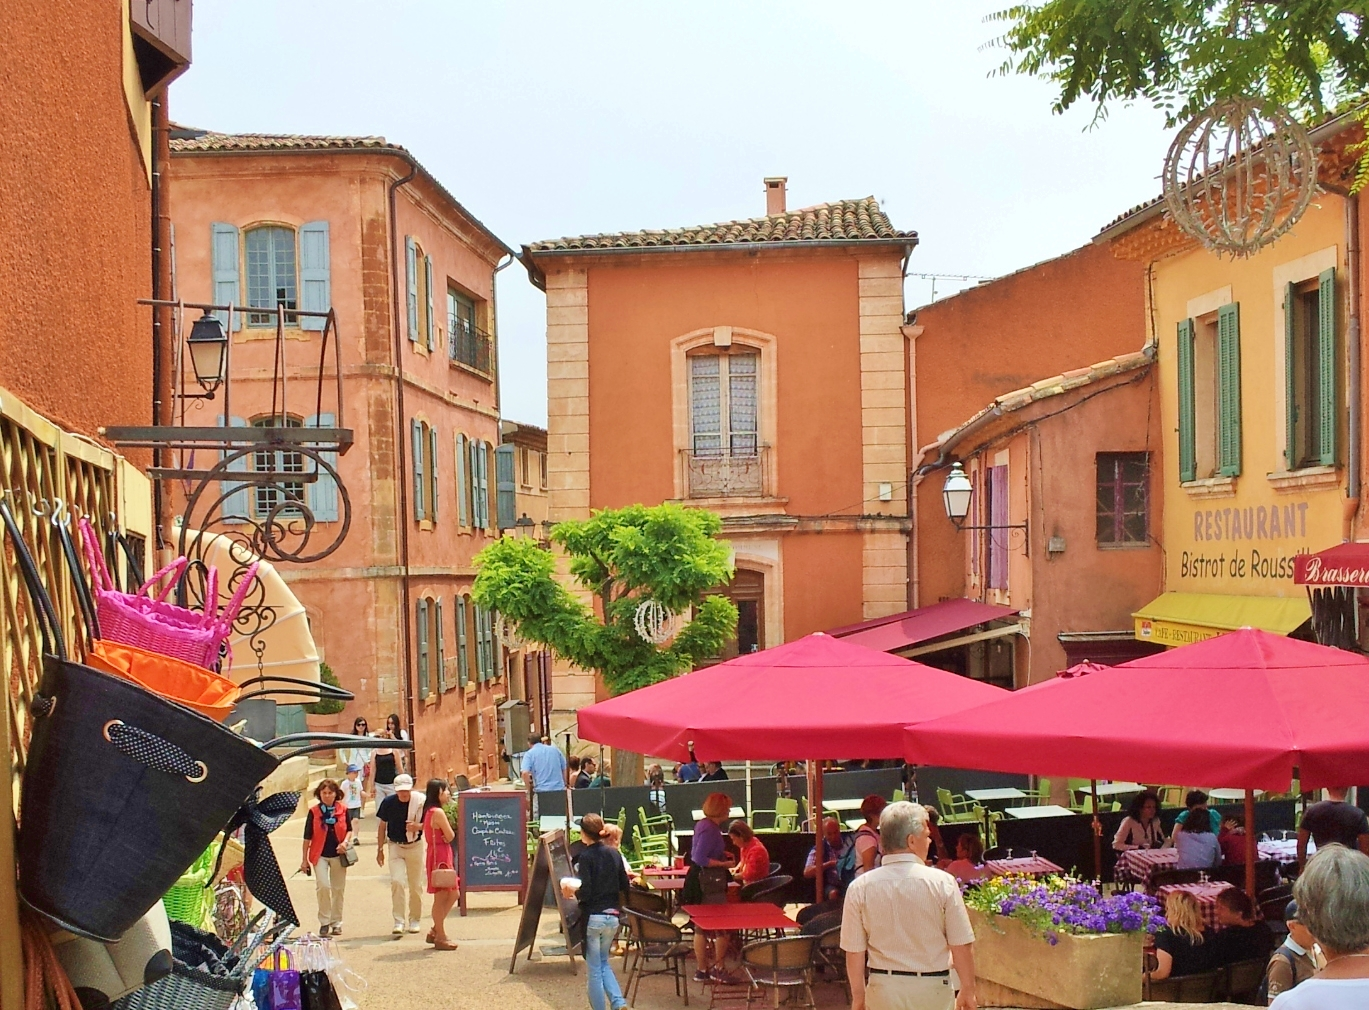 Roussillon-square-place